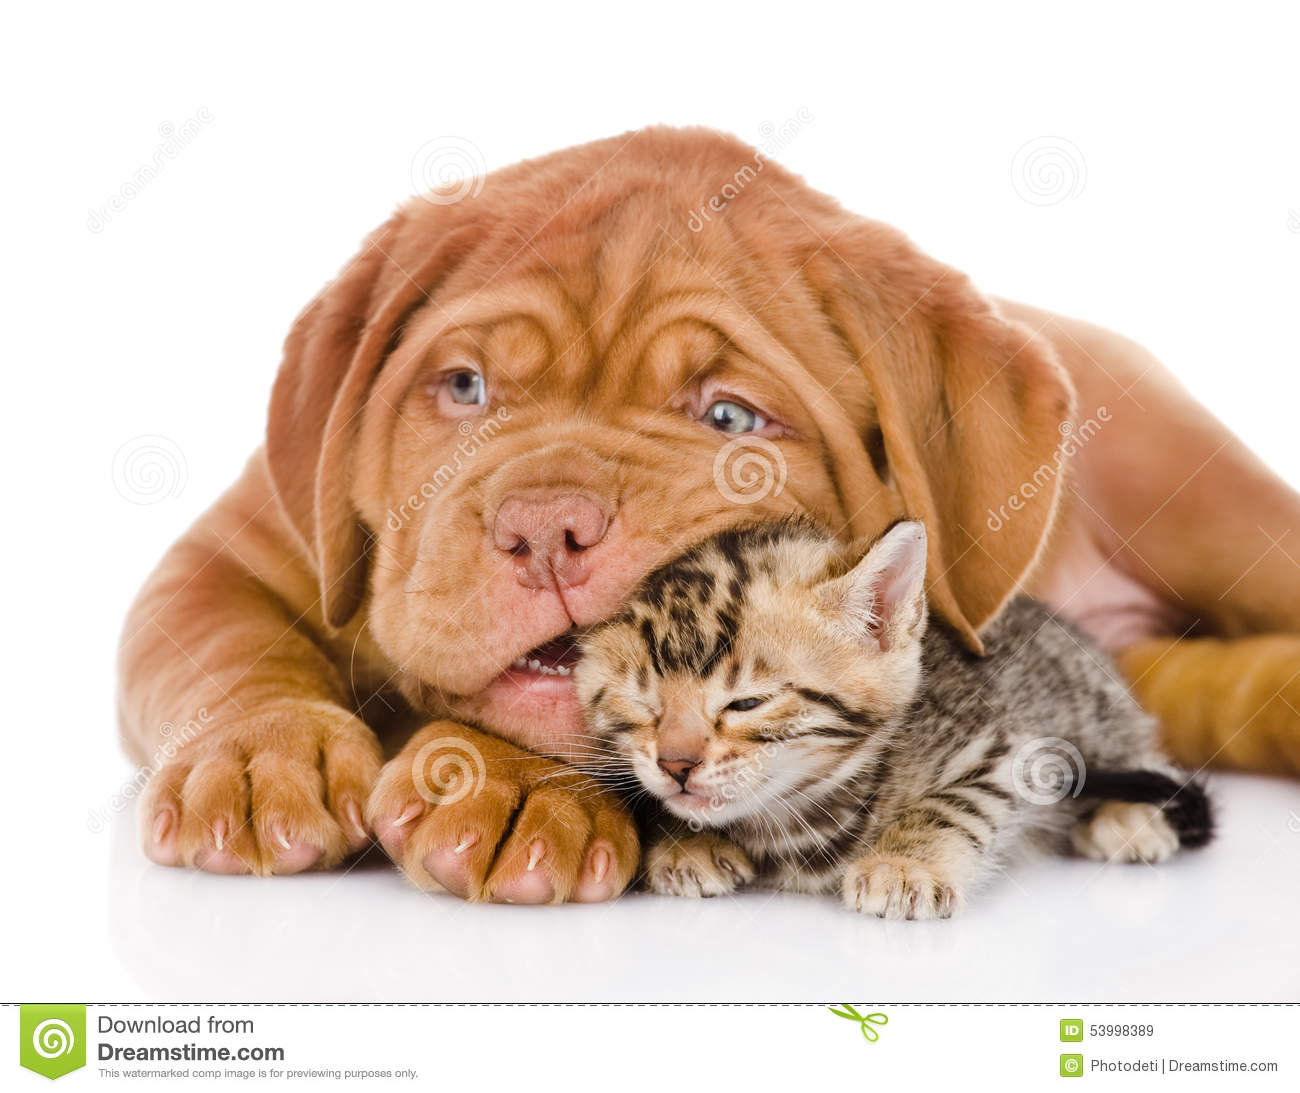 Cute Little Love Couple Hd Wallpaper Bordeaux Puppy Dog Playing With Bengal Kitten Isolated